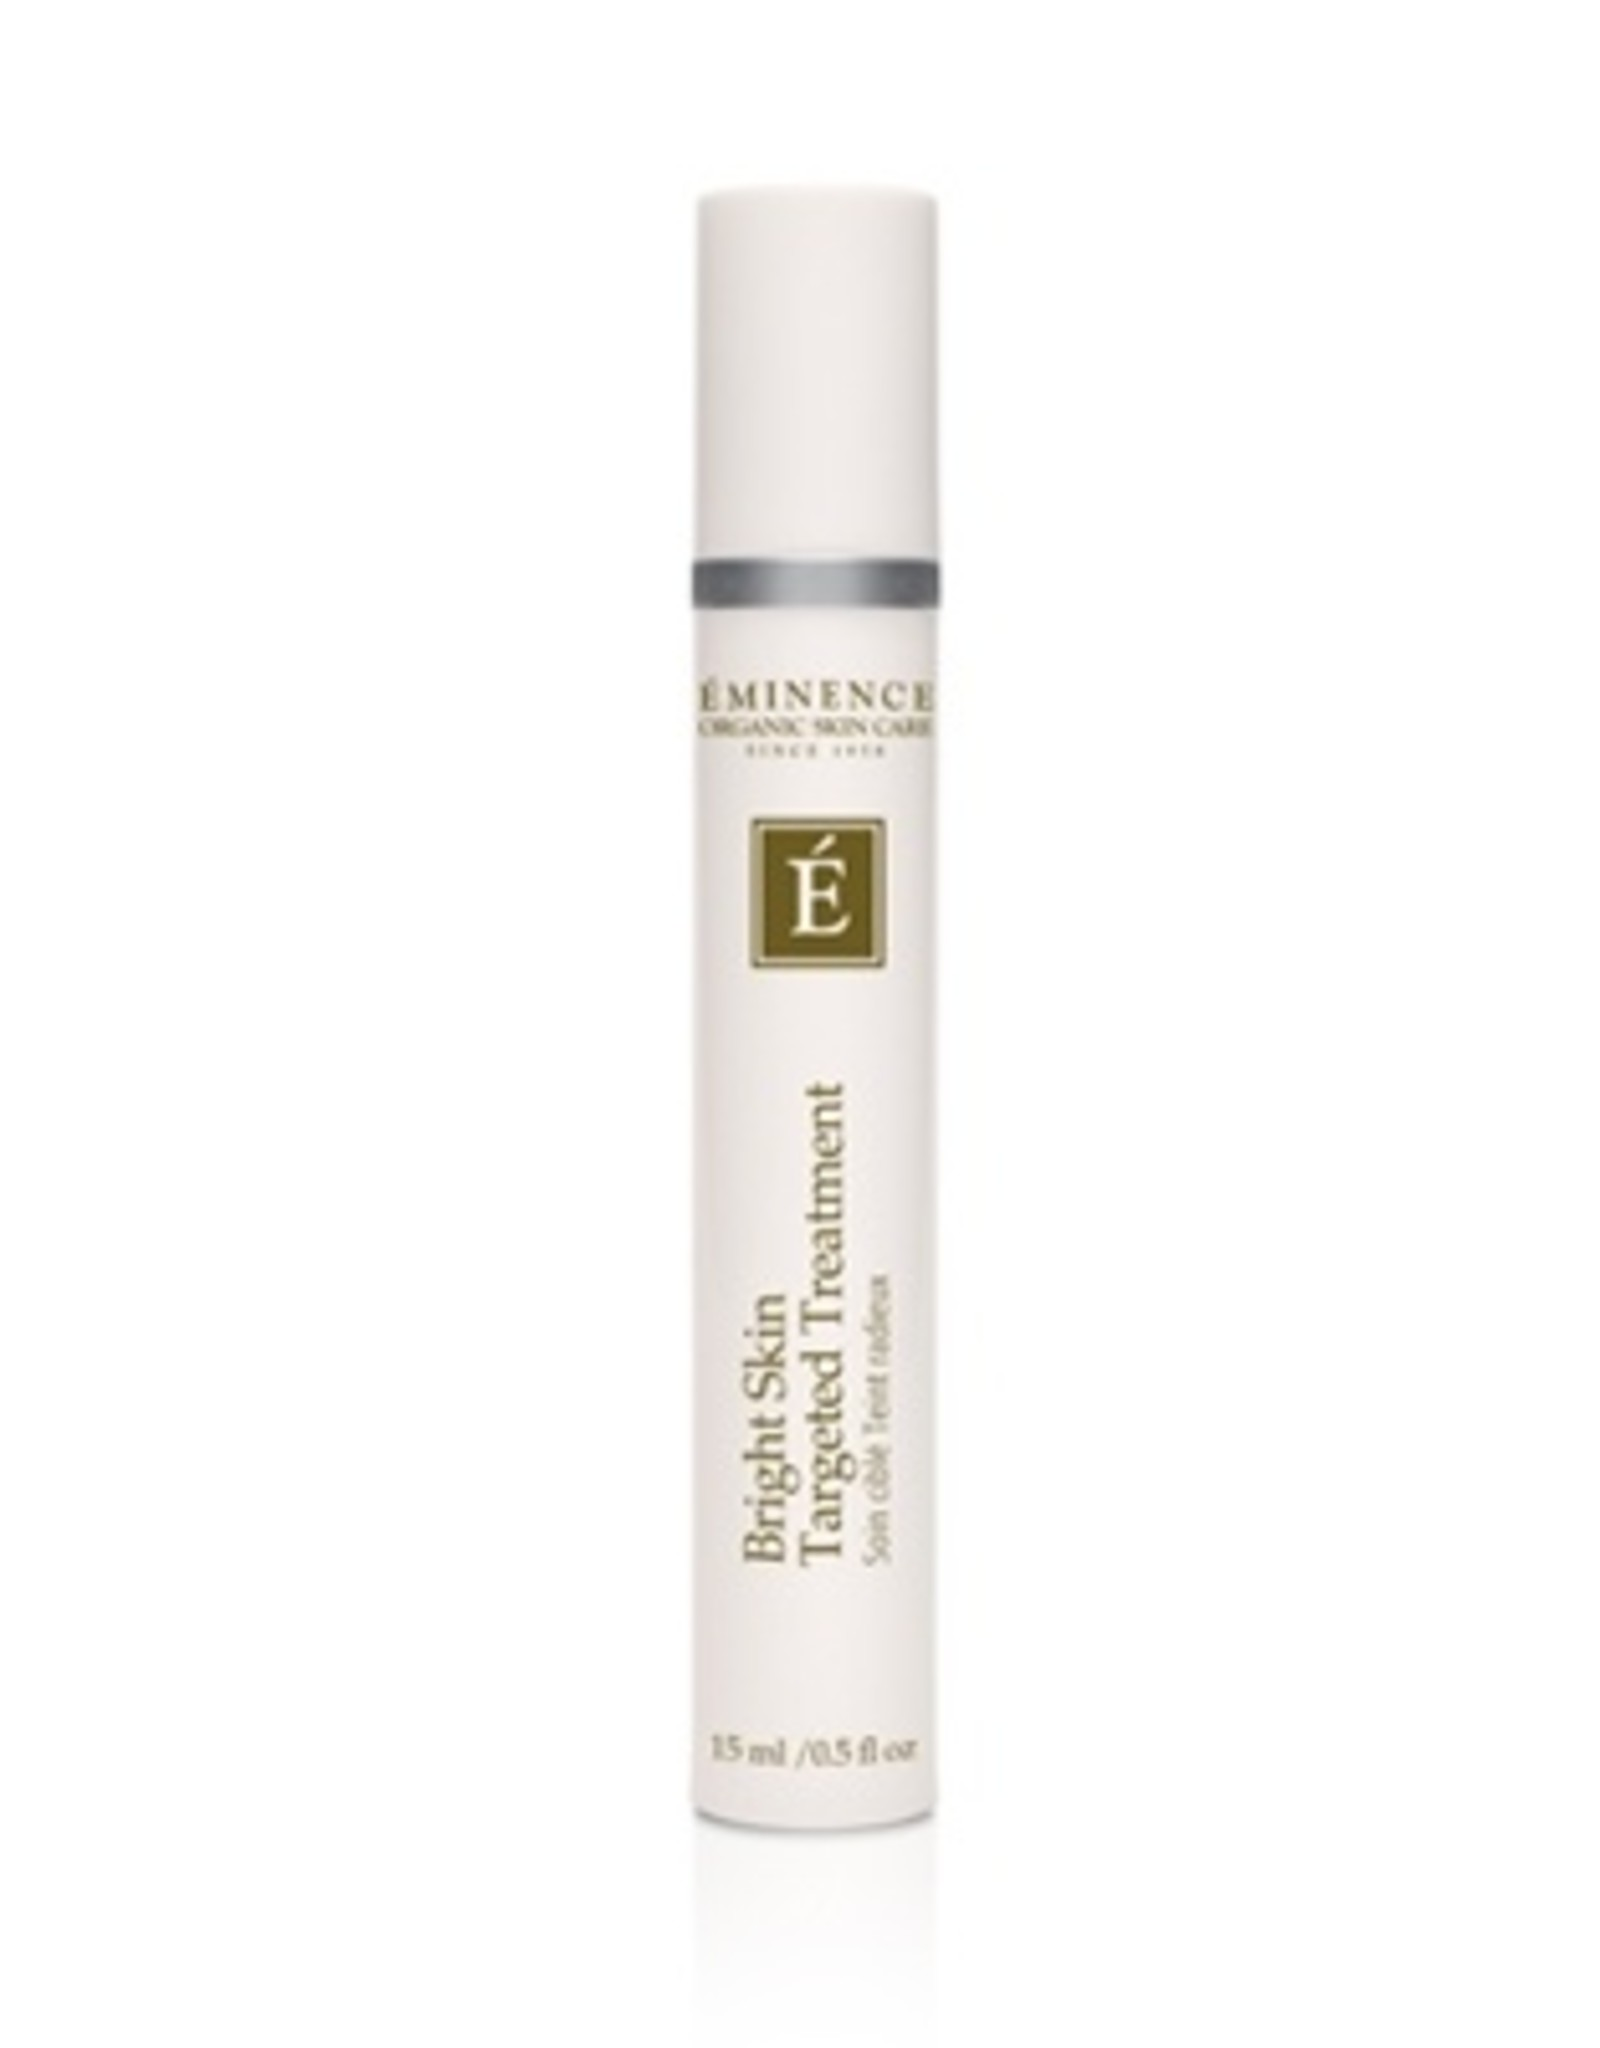 Eminence Organic Skin Care Bright Skin Targeted Dark Spot Treatment